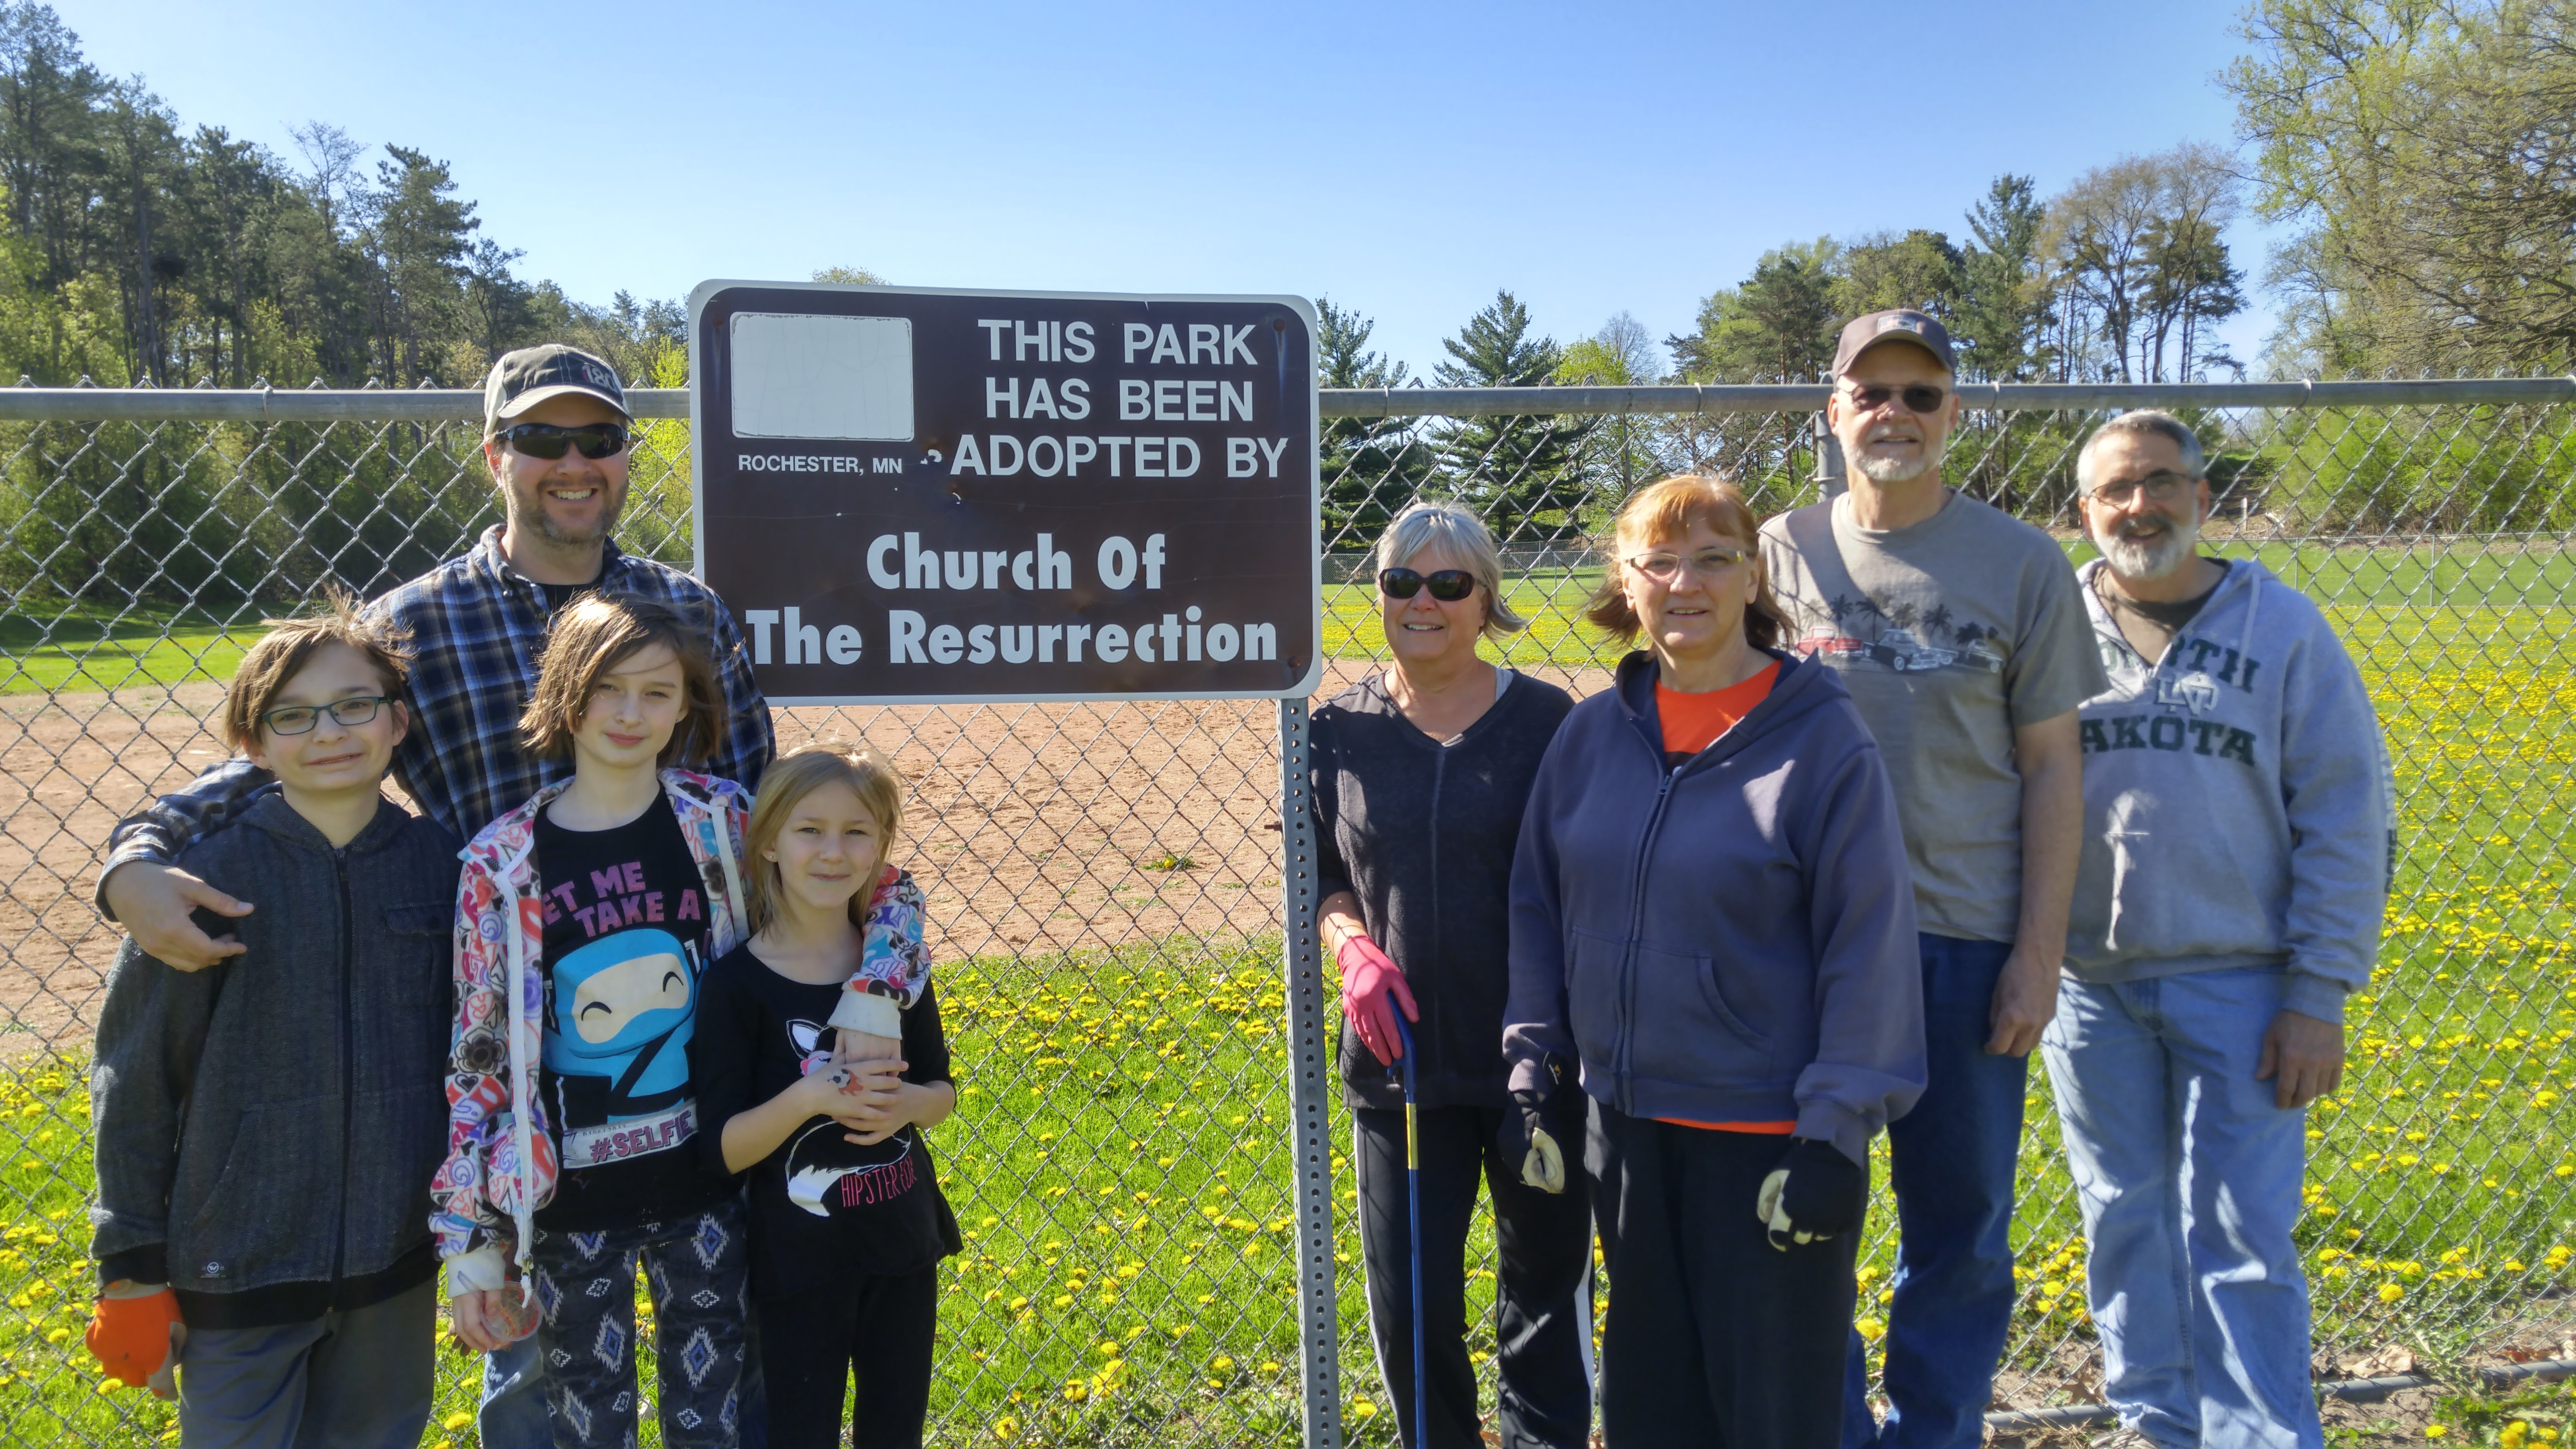 Church of the Resurrection Adopt-A-Park volunteers